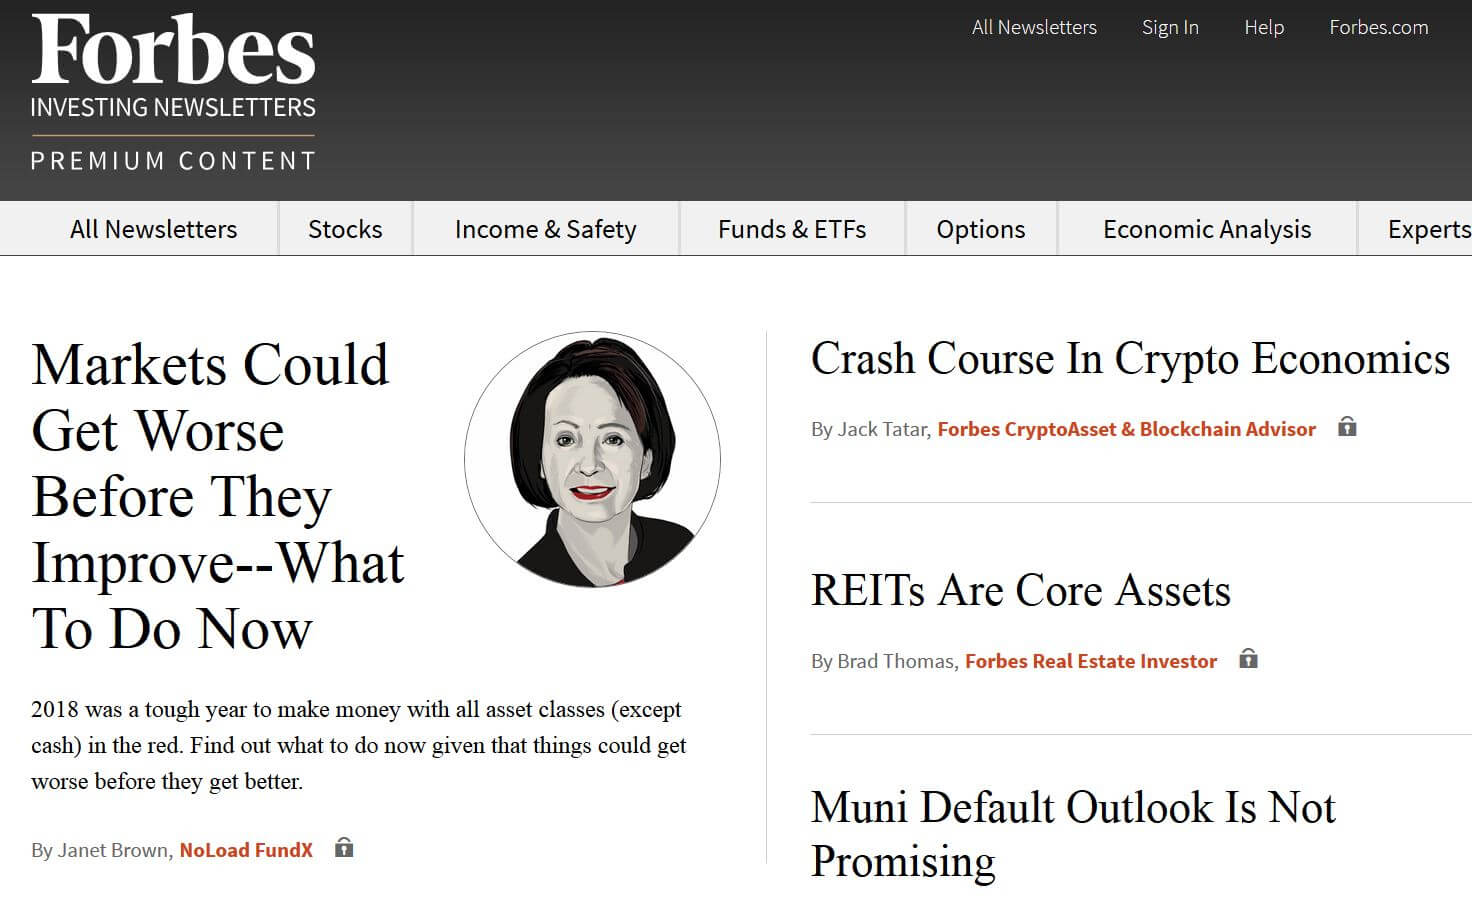 Forbes investing newsletters